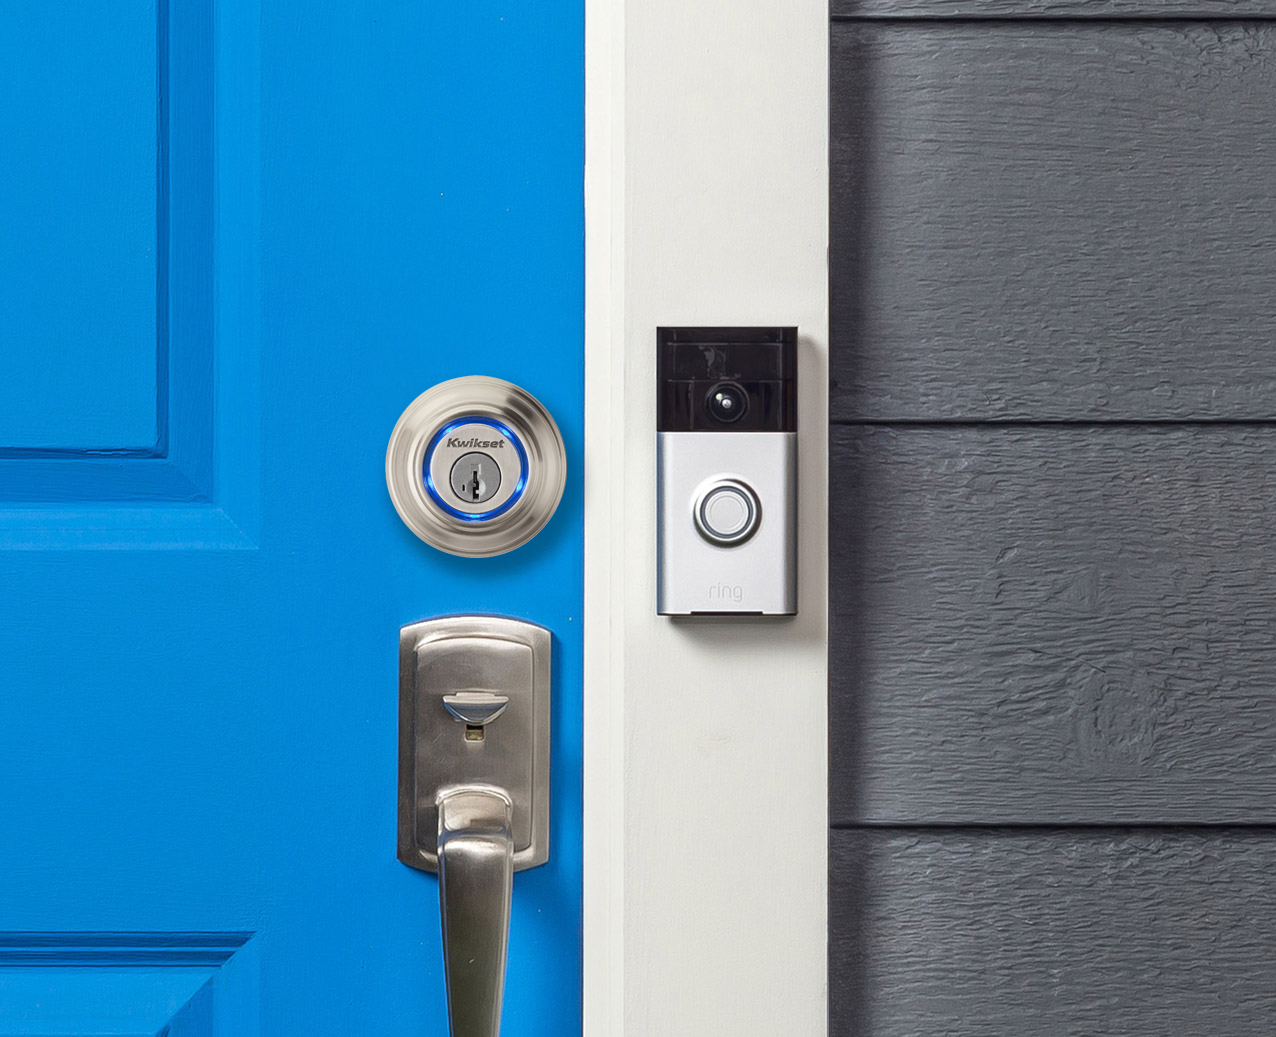 wireless front door cameraKwikset Kevo Smart Lock Now Works With Ring Video Doorbell